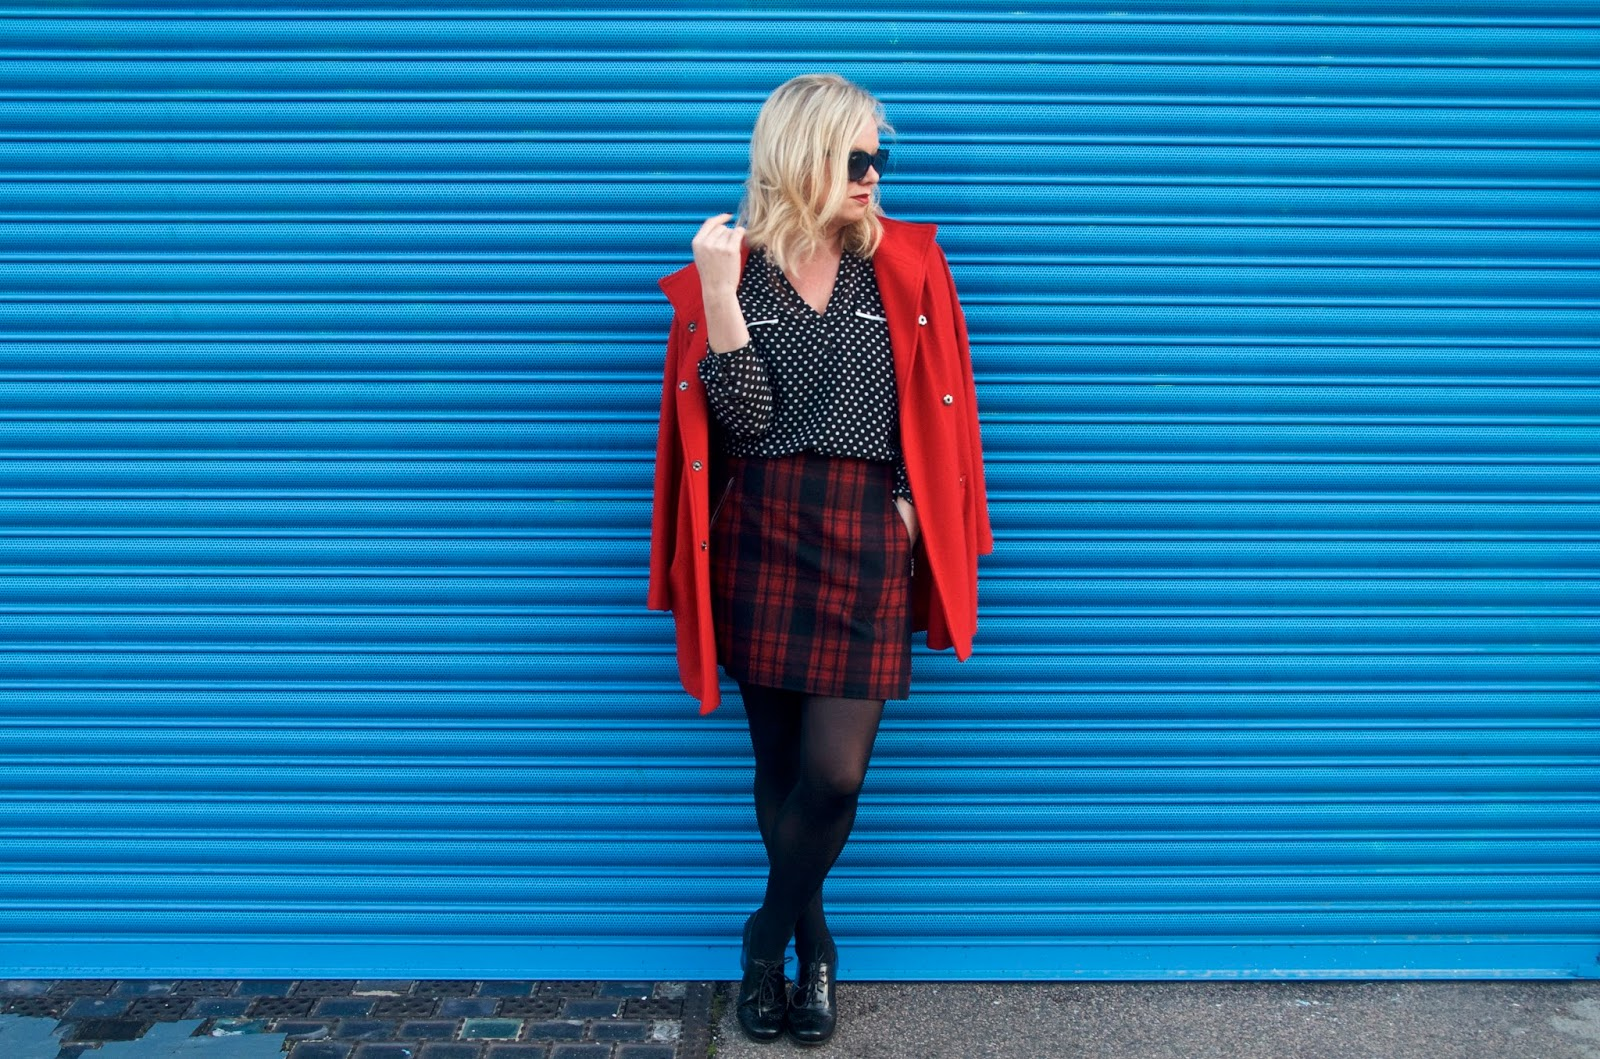 polka dot top, plaid skirt, red coat, tights and brogues with blue wall